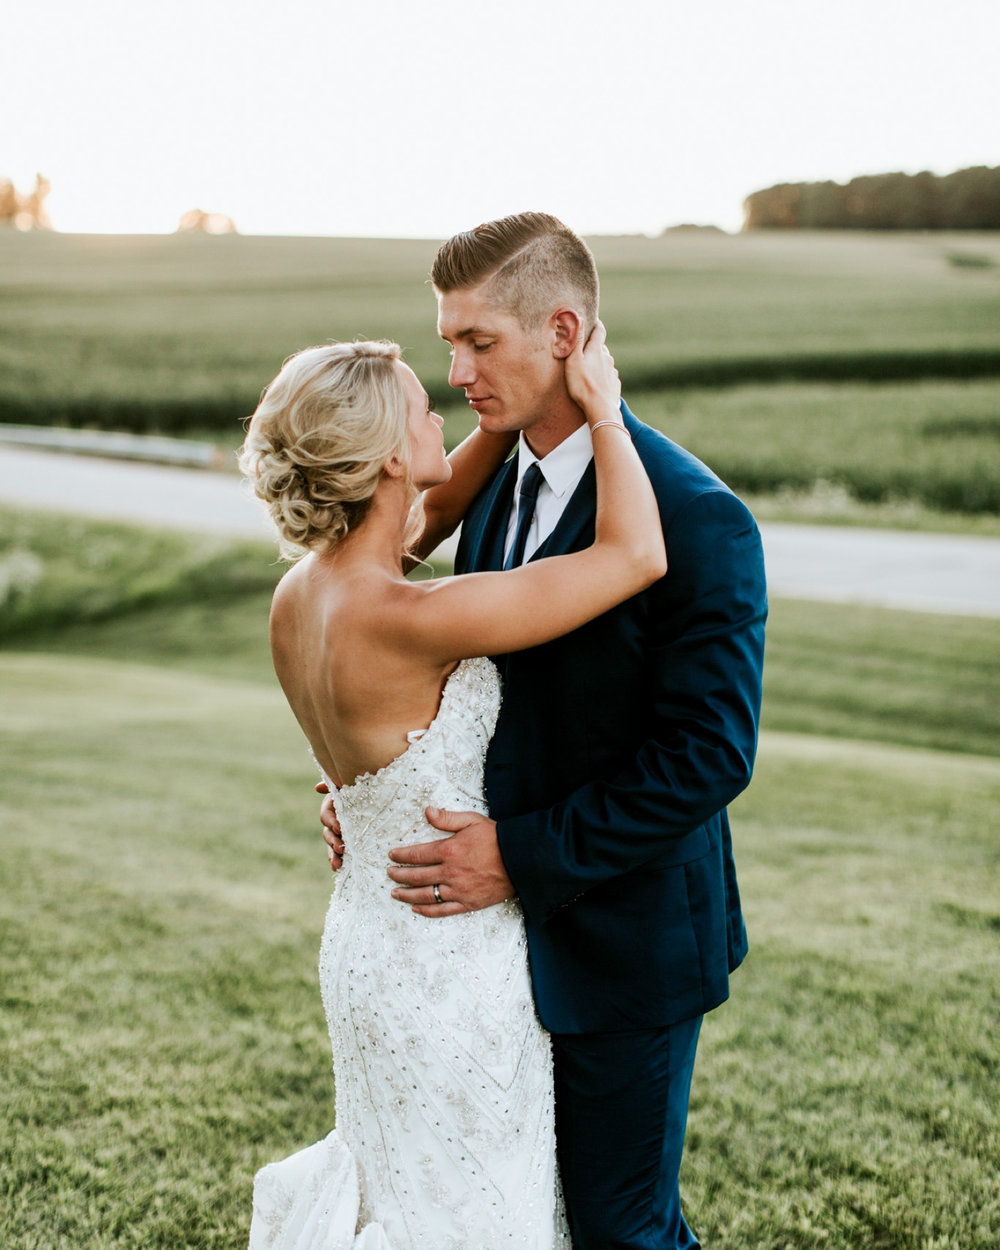 Kayla-Cody-Midwest-Summer-Backyard-Wedding-167.jpg